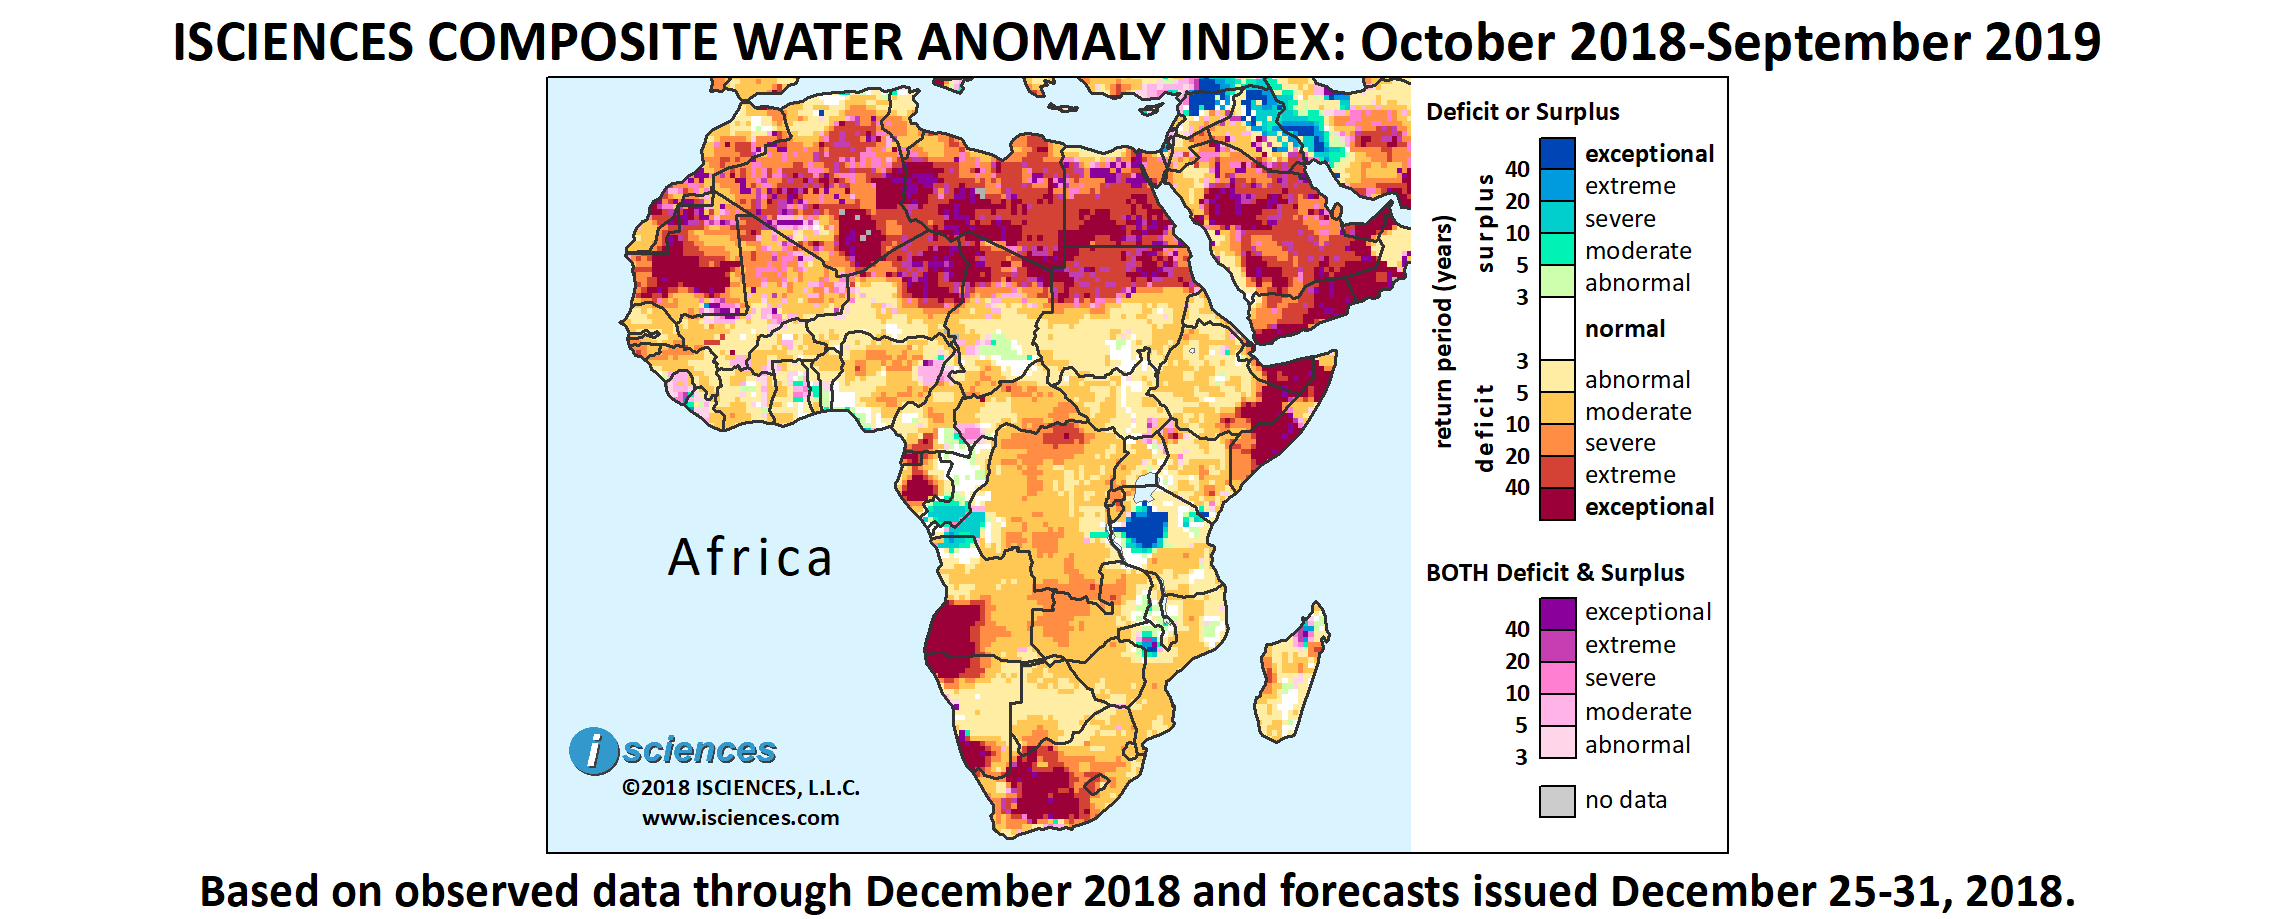 ISciences_Africa_R201812_12mo_twit_pic.png